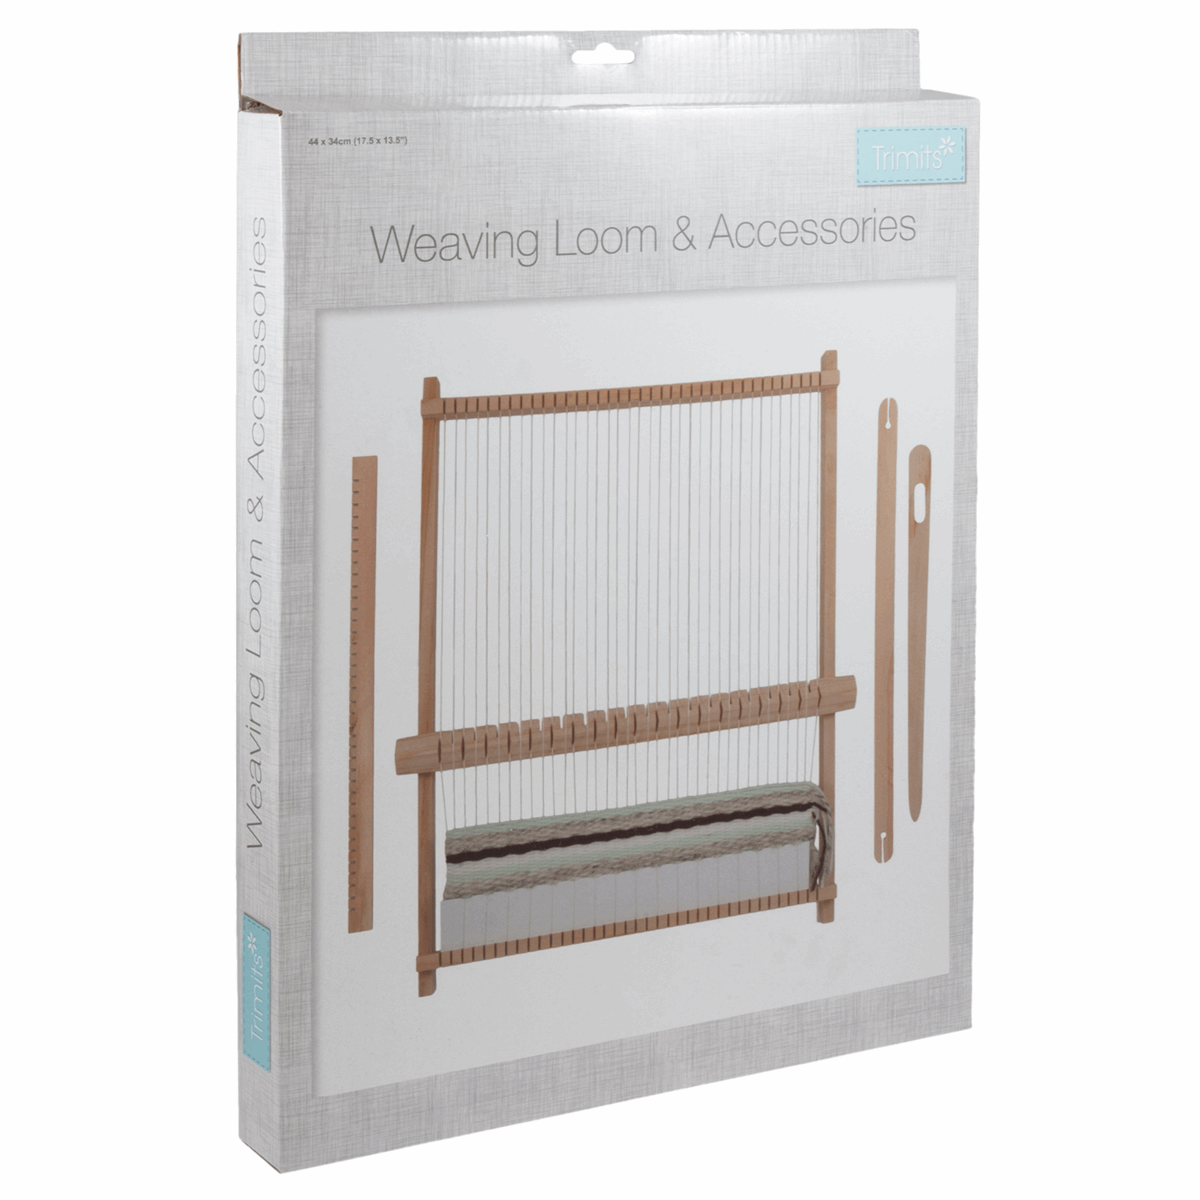 Picture of Weaving Loom & Accessories